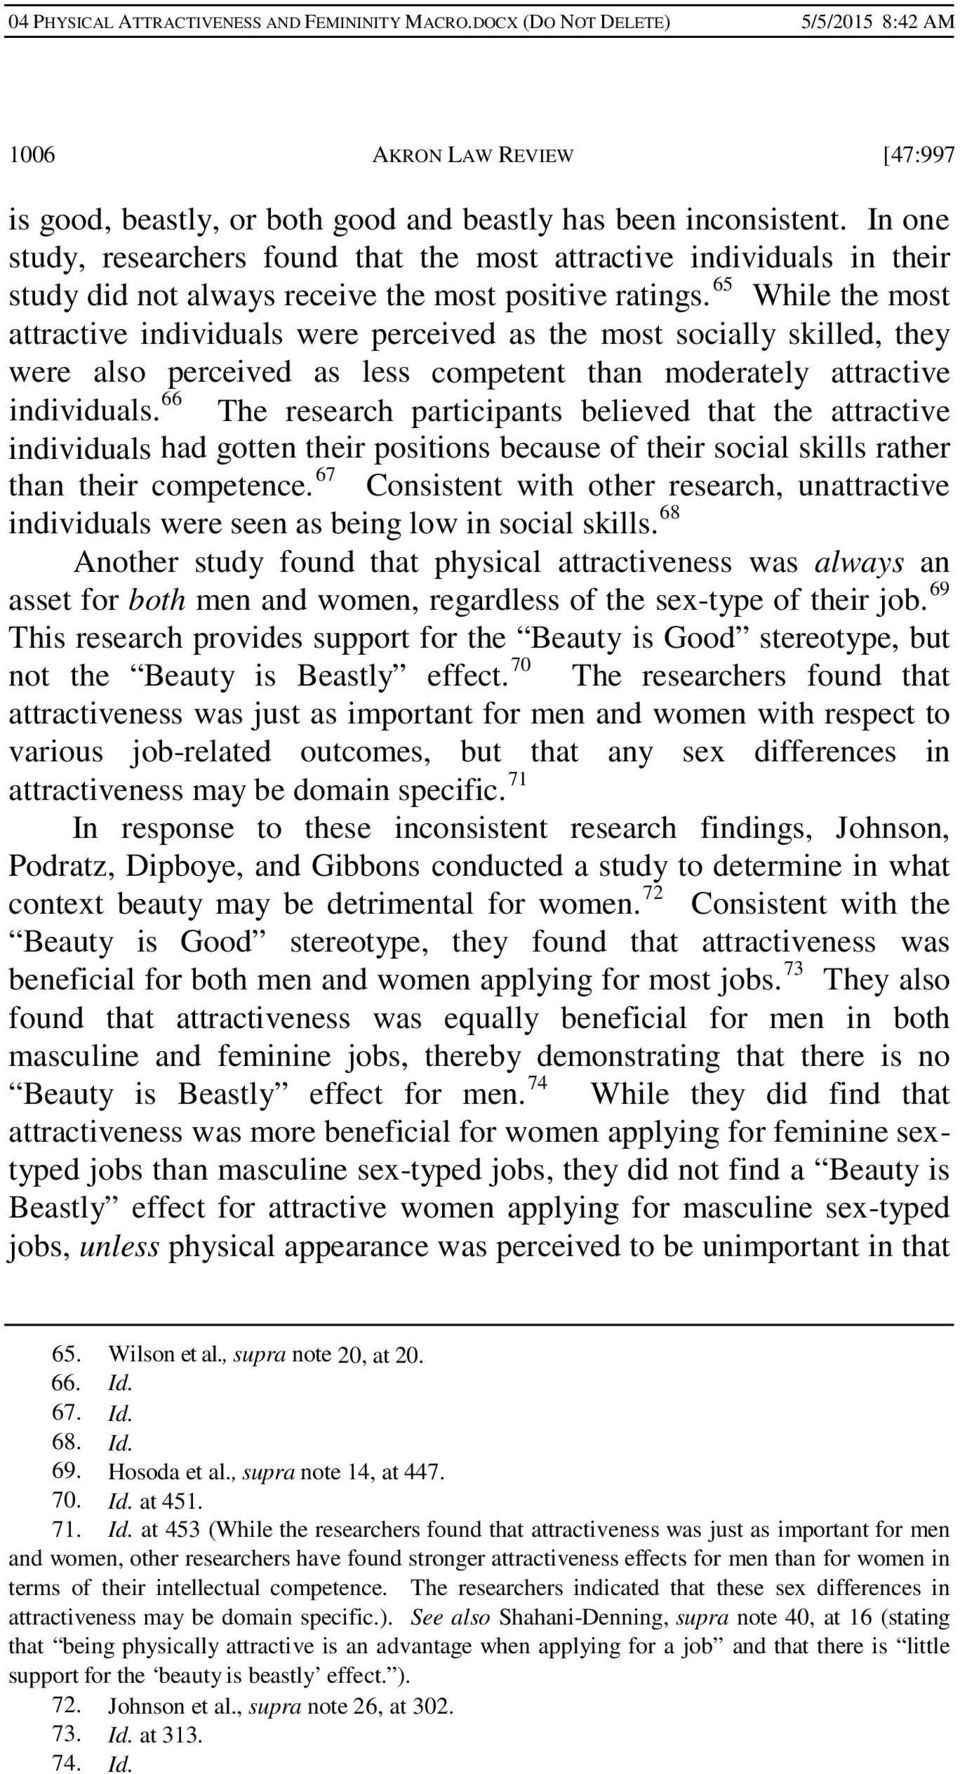 65 While the most attractive individuals were perceived as the most socially skilled, they were also perceived as less competent than moderately attractive individuals.